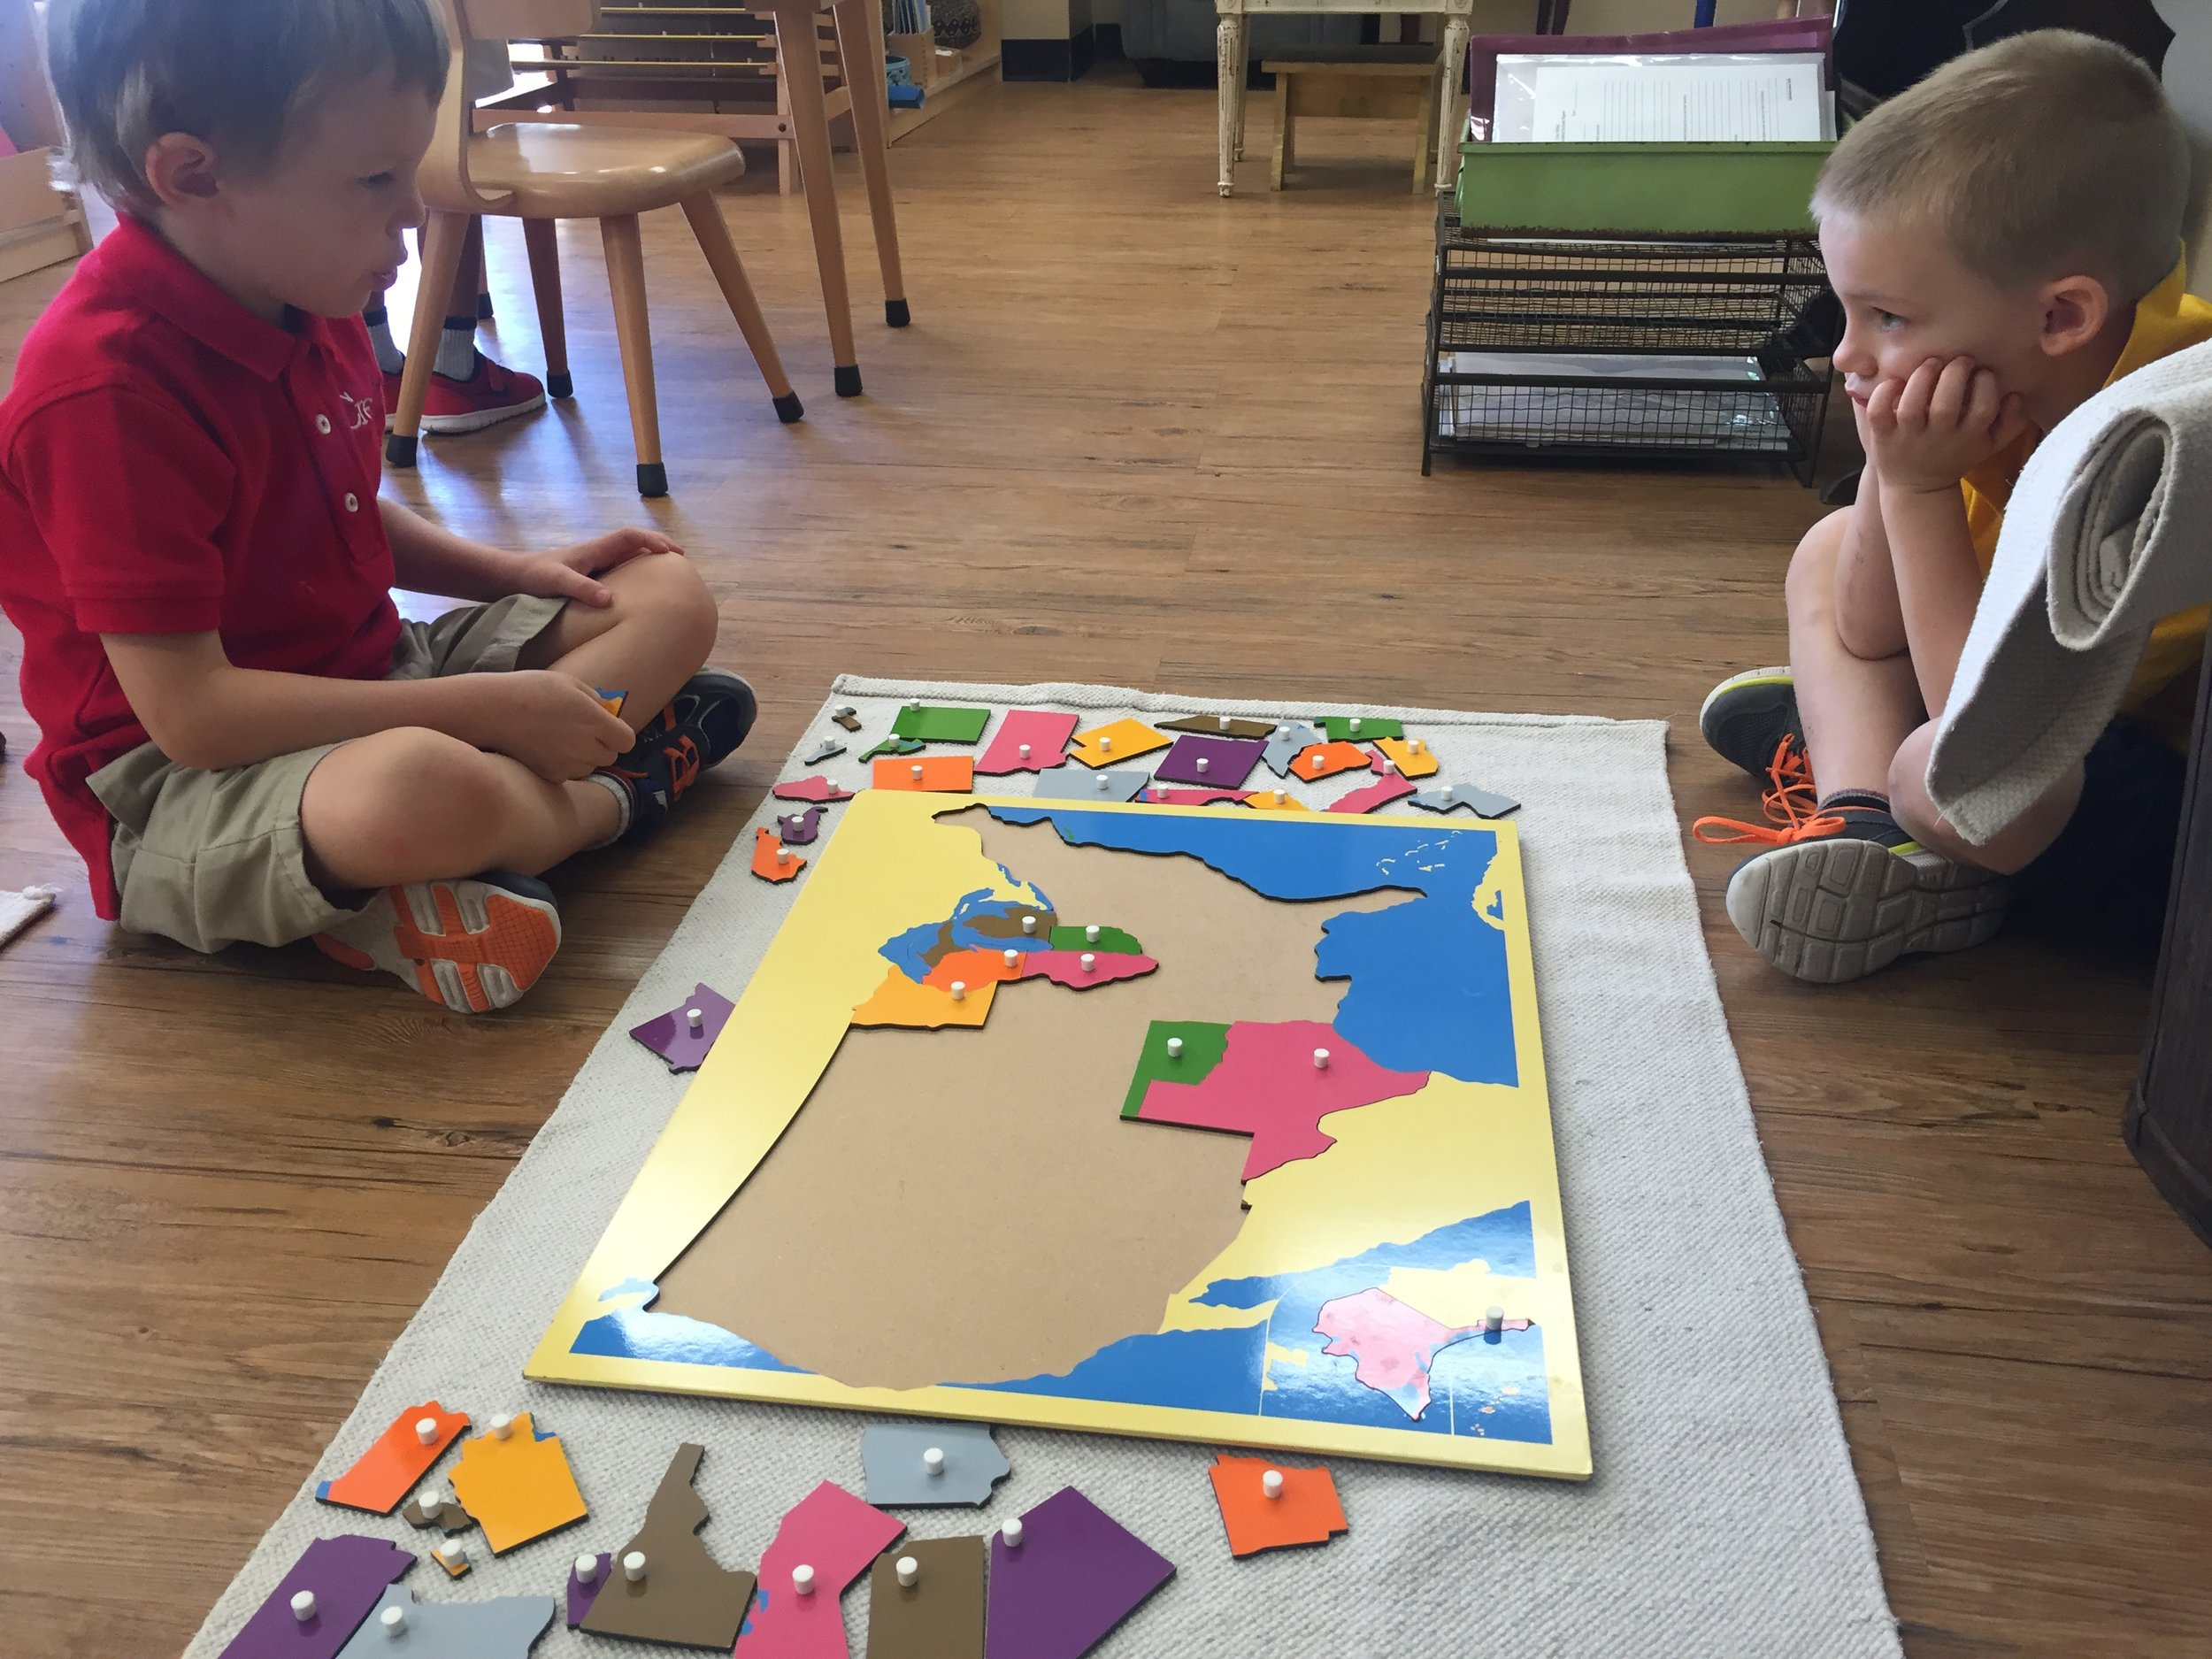 Puzzle Map of United States, learning the shape and location of each state.